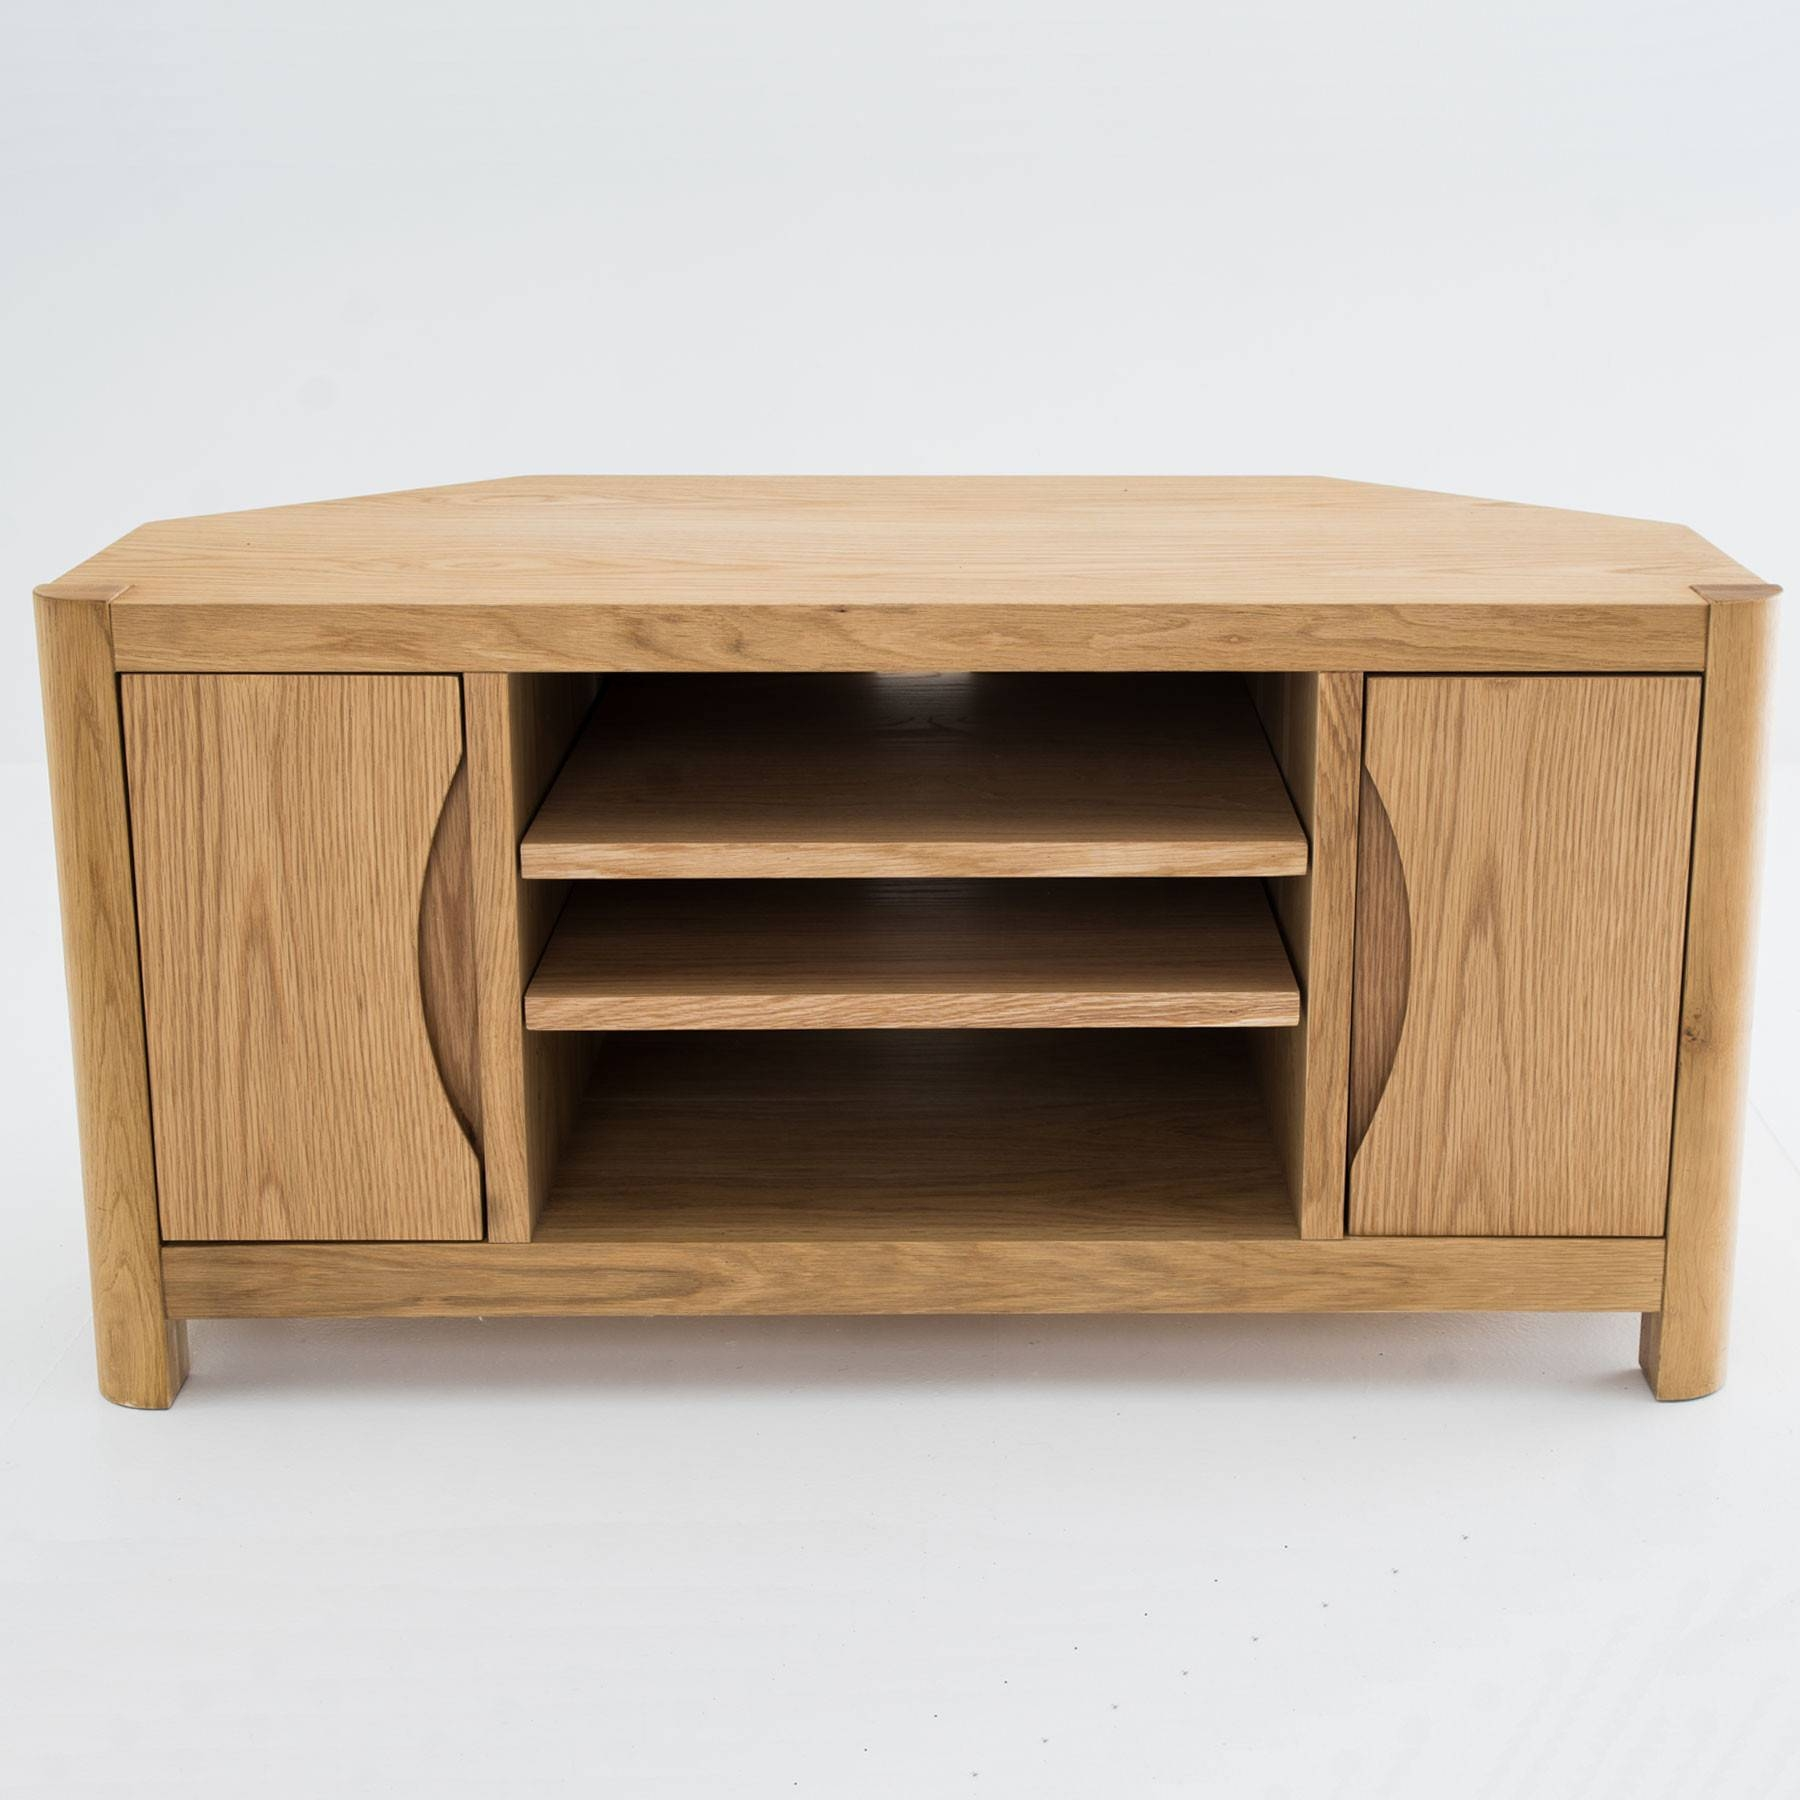 "Oslo Light Oak Corner Tv Stand For Up To 44"" Tvs throughout Light Oak Corner Tv Cabinets (Image 8 of 15)"